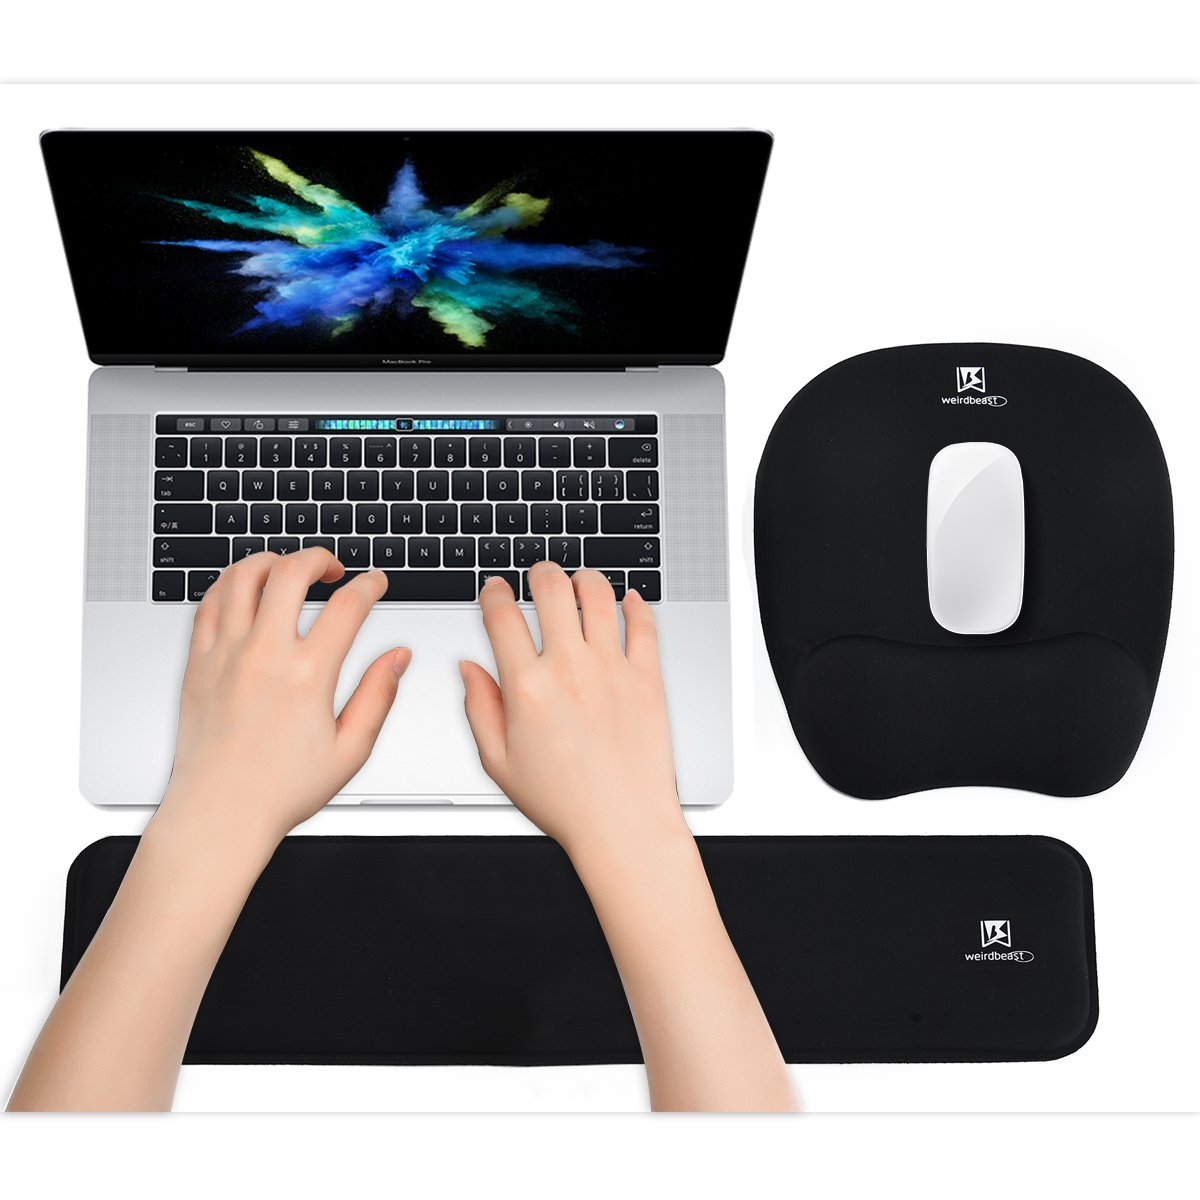 WB WEIRDBEAST Ergonomic Keyboard Wrist Rest Pad and Mouse Pad Hand Support for Laptop Computer Wrist Rest Support Cushion Nonslip Memory Foam Set for Office Gaming Easy Typing & Pain Relief - Black by WB WEIRDBEAST